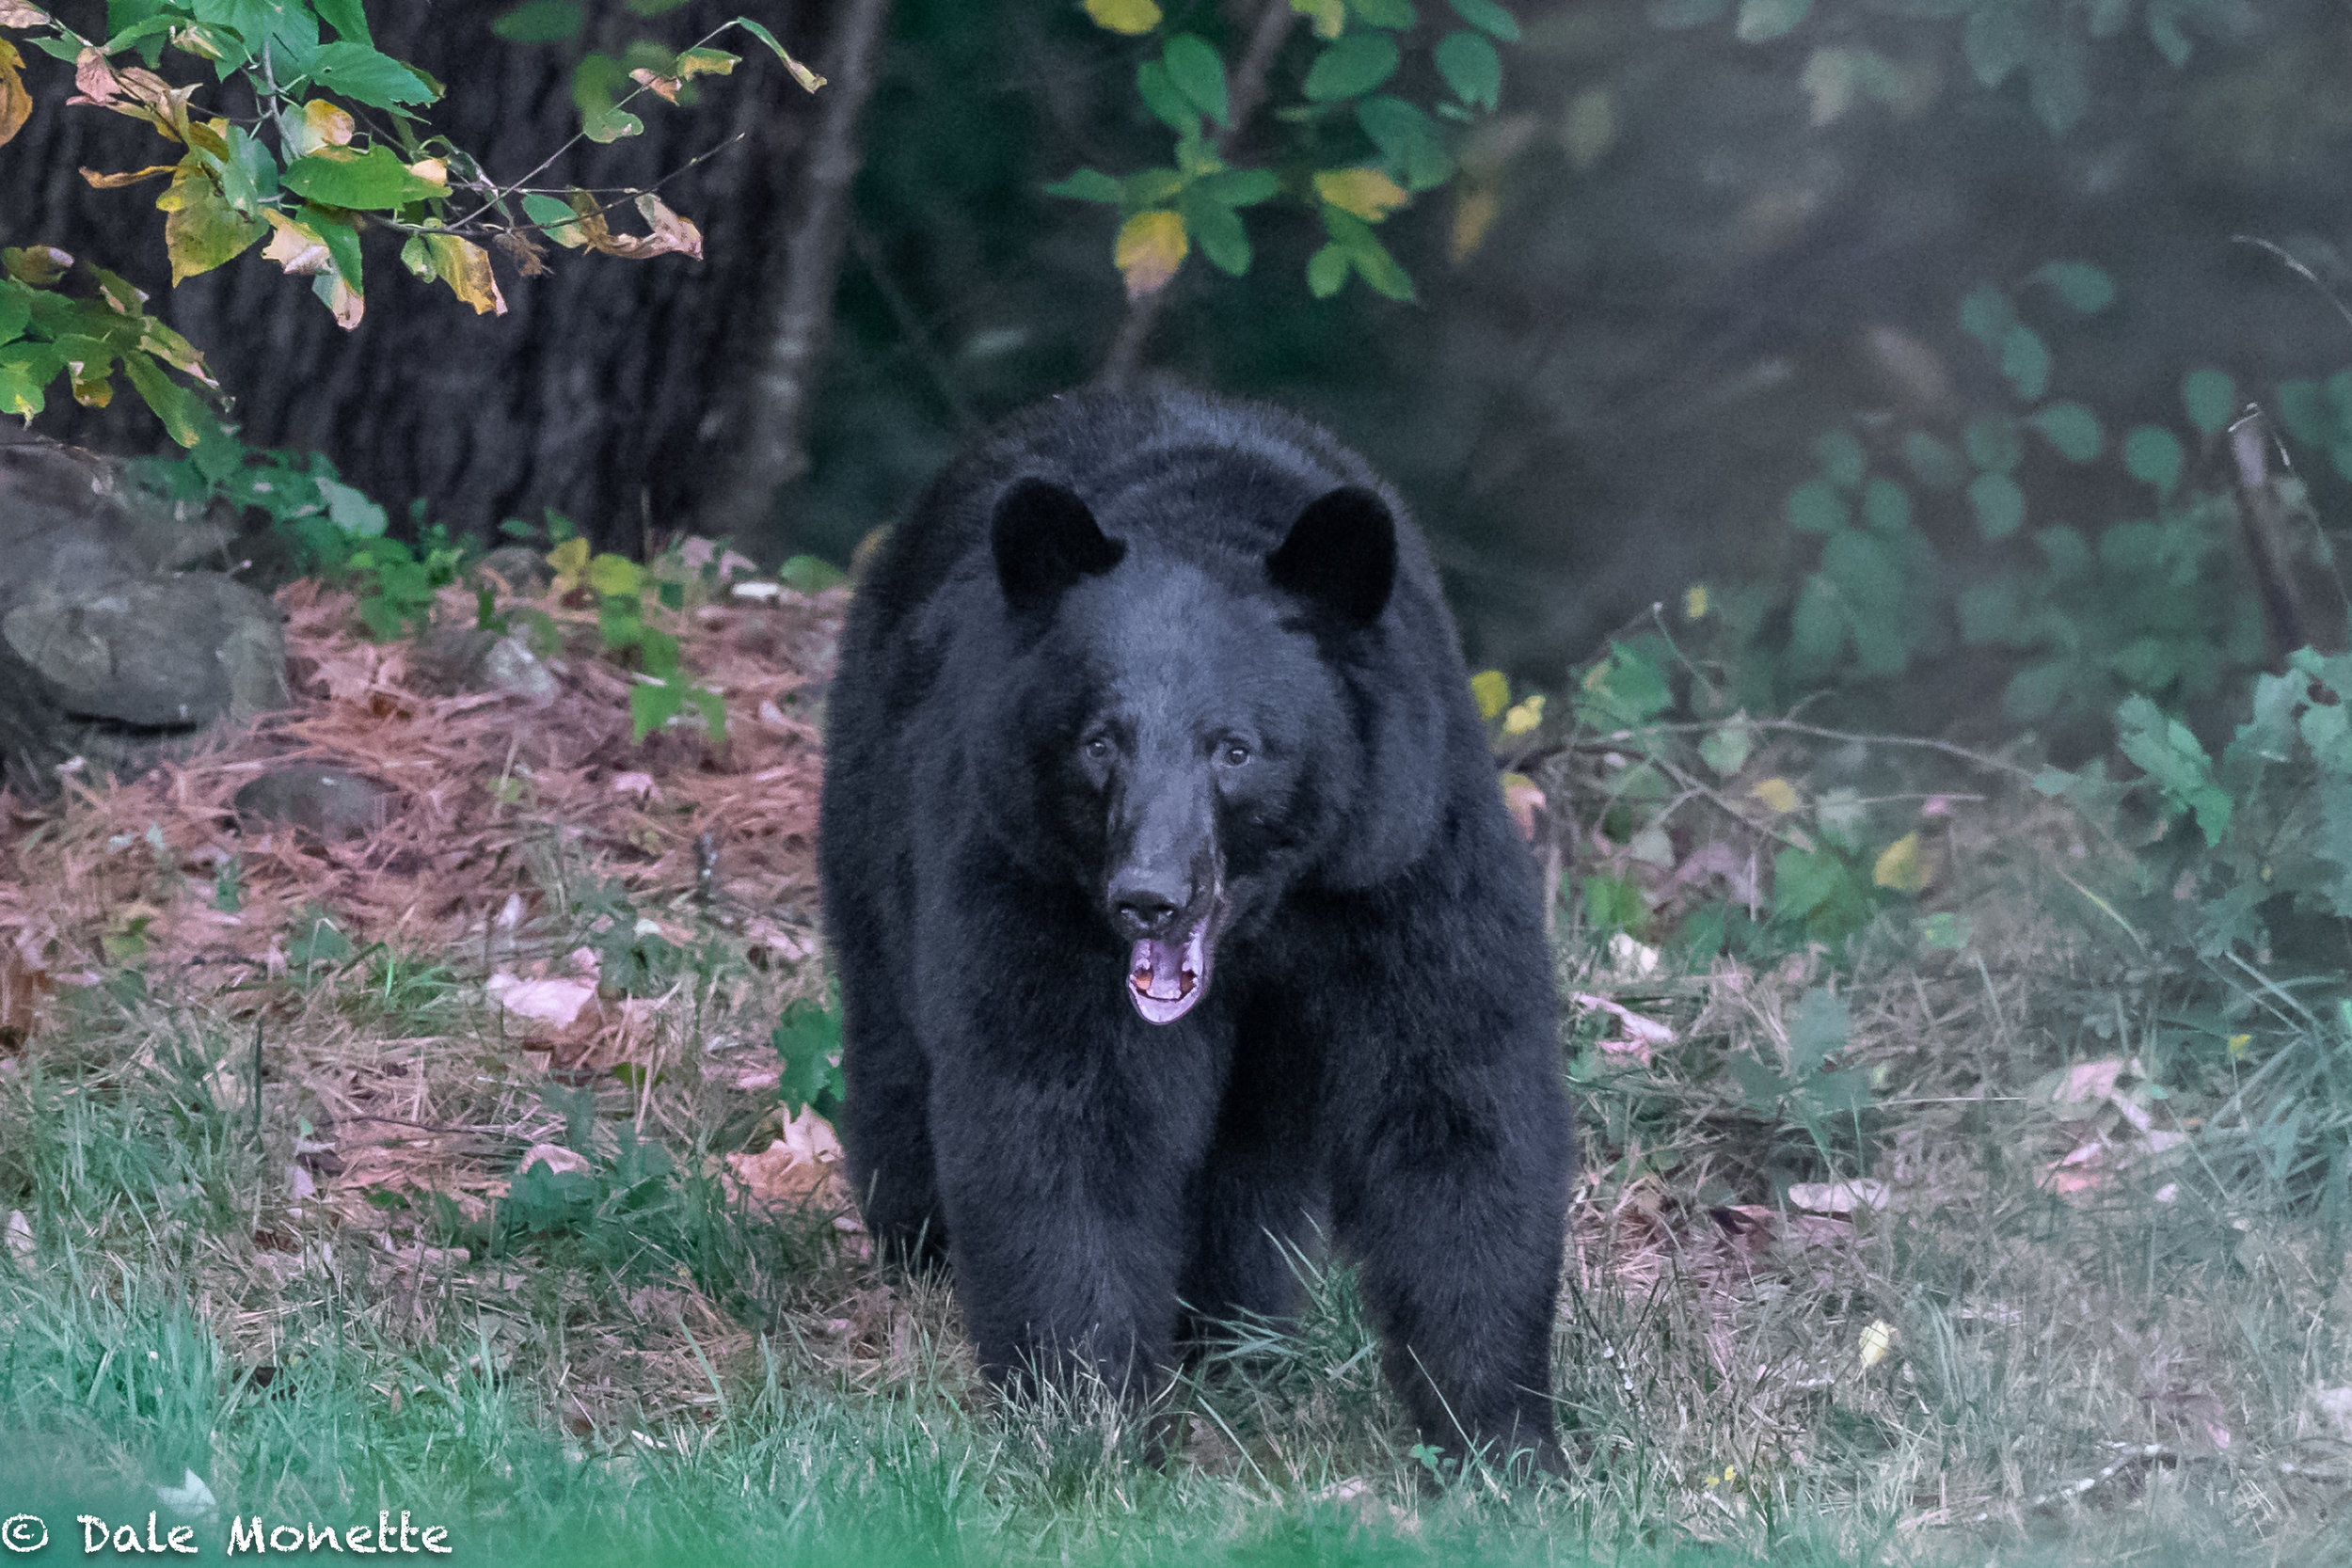 I just told this bear the joke about the 2 bears that walked into a bar :)